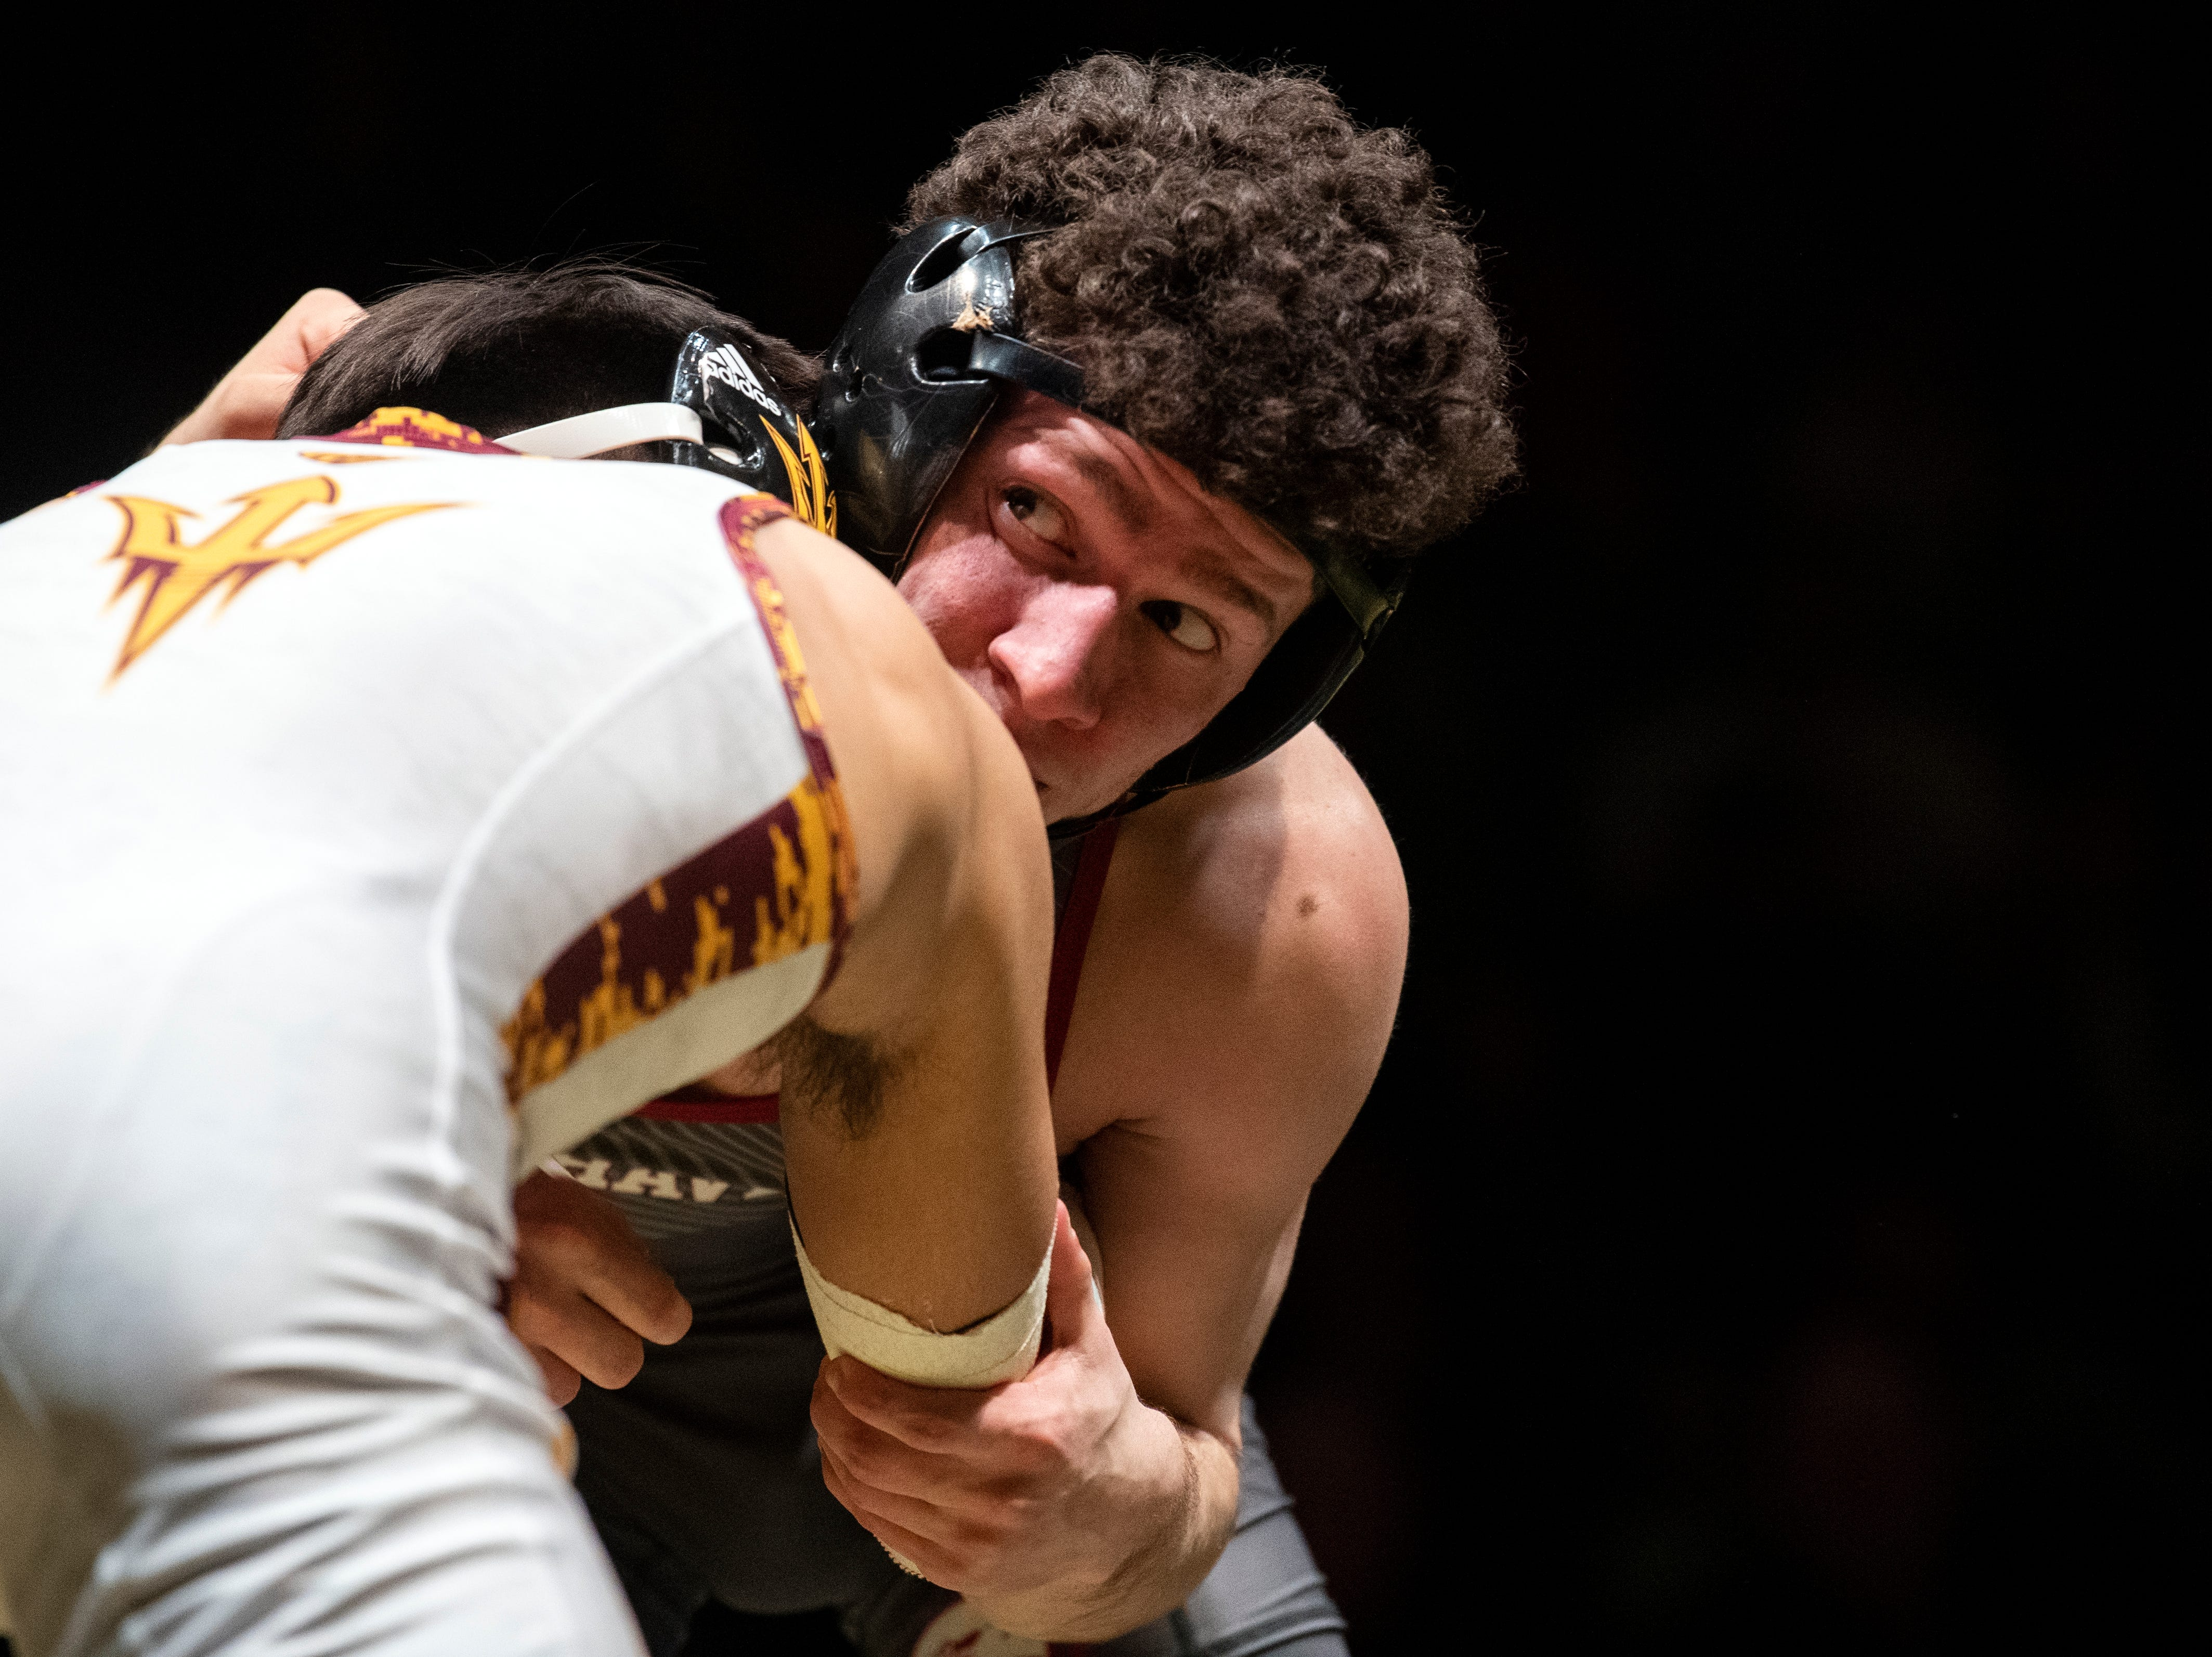 Lock Haven's Luke Werner looks at the ref while wrestling Arizona State's Brandon Courtney during the 125-pound bout at Red Lion's Fitzkee Athletic Center on Friday, Jan. 25, 2019. Werner pinned Courtney as No. 22 Lock Haven upset No. 12 Arizona State, 23-14, in the first ever 'Rumble in the Jungle.'